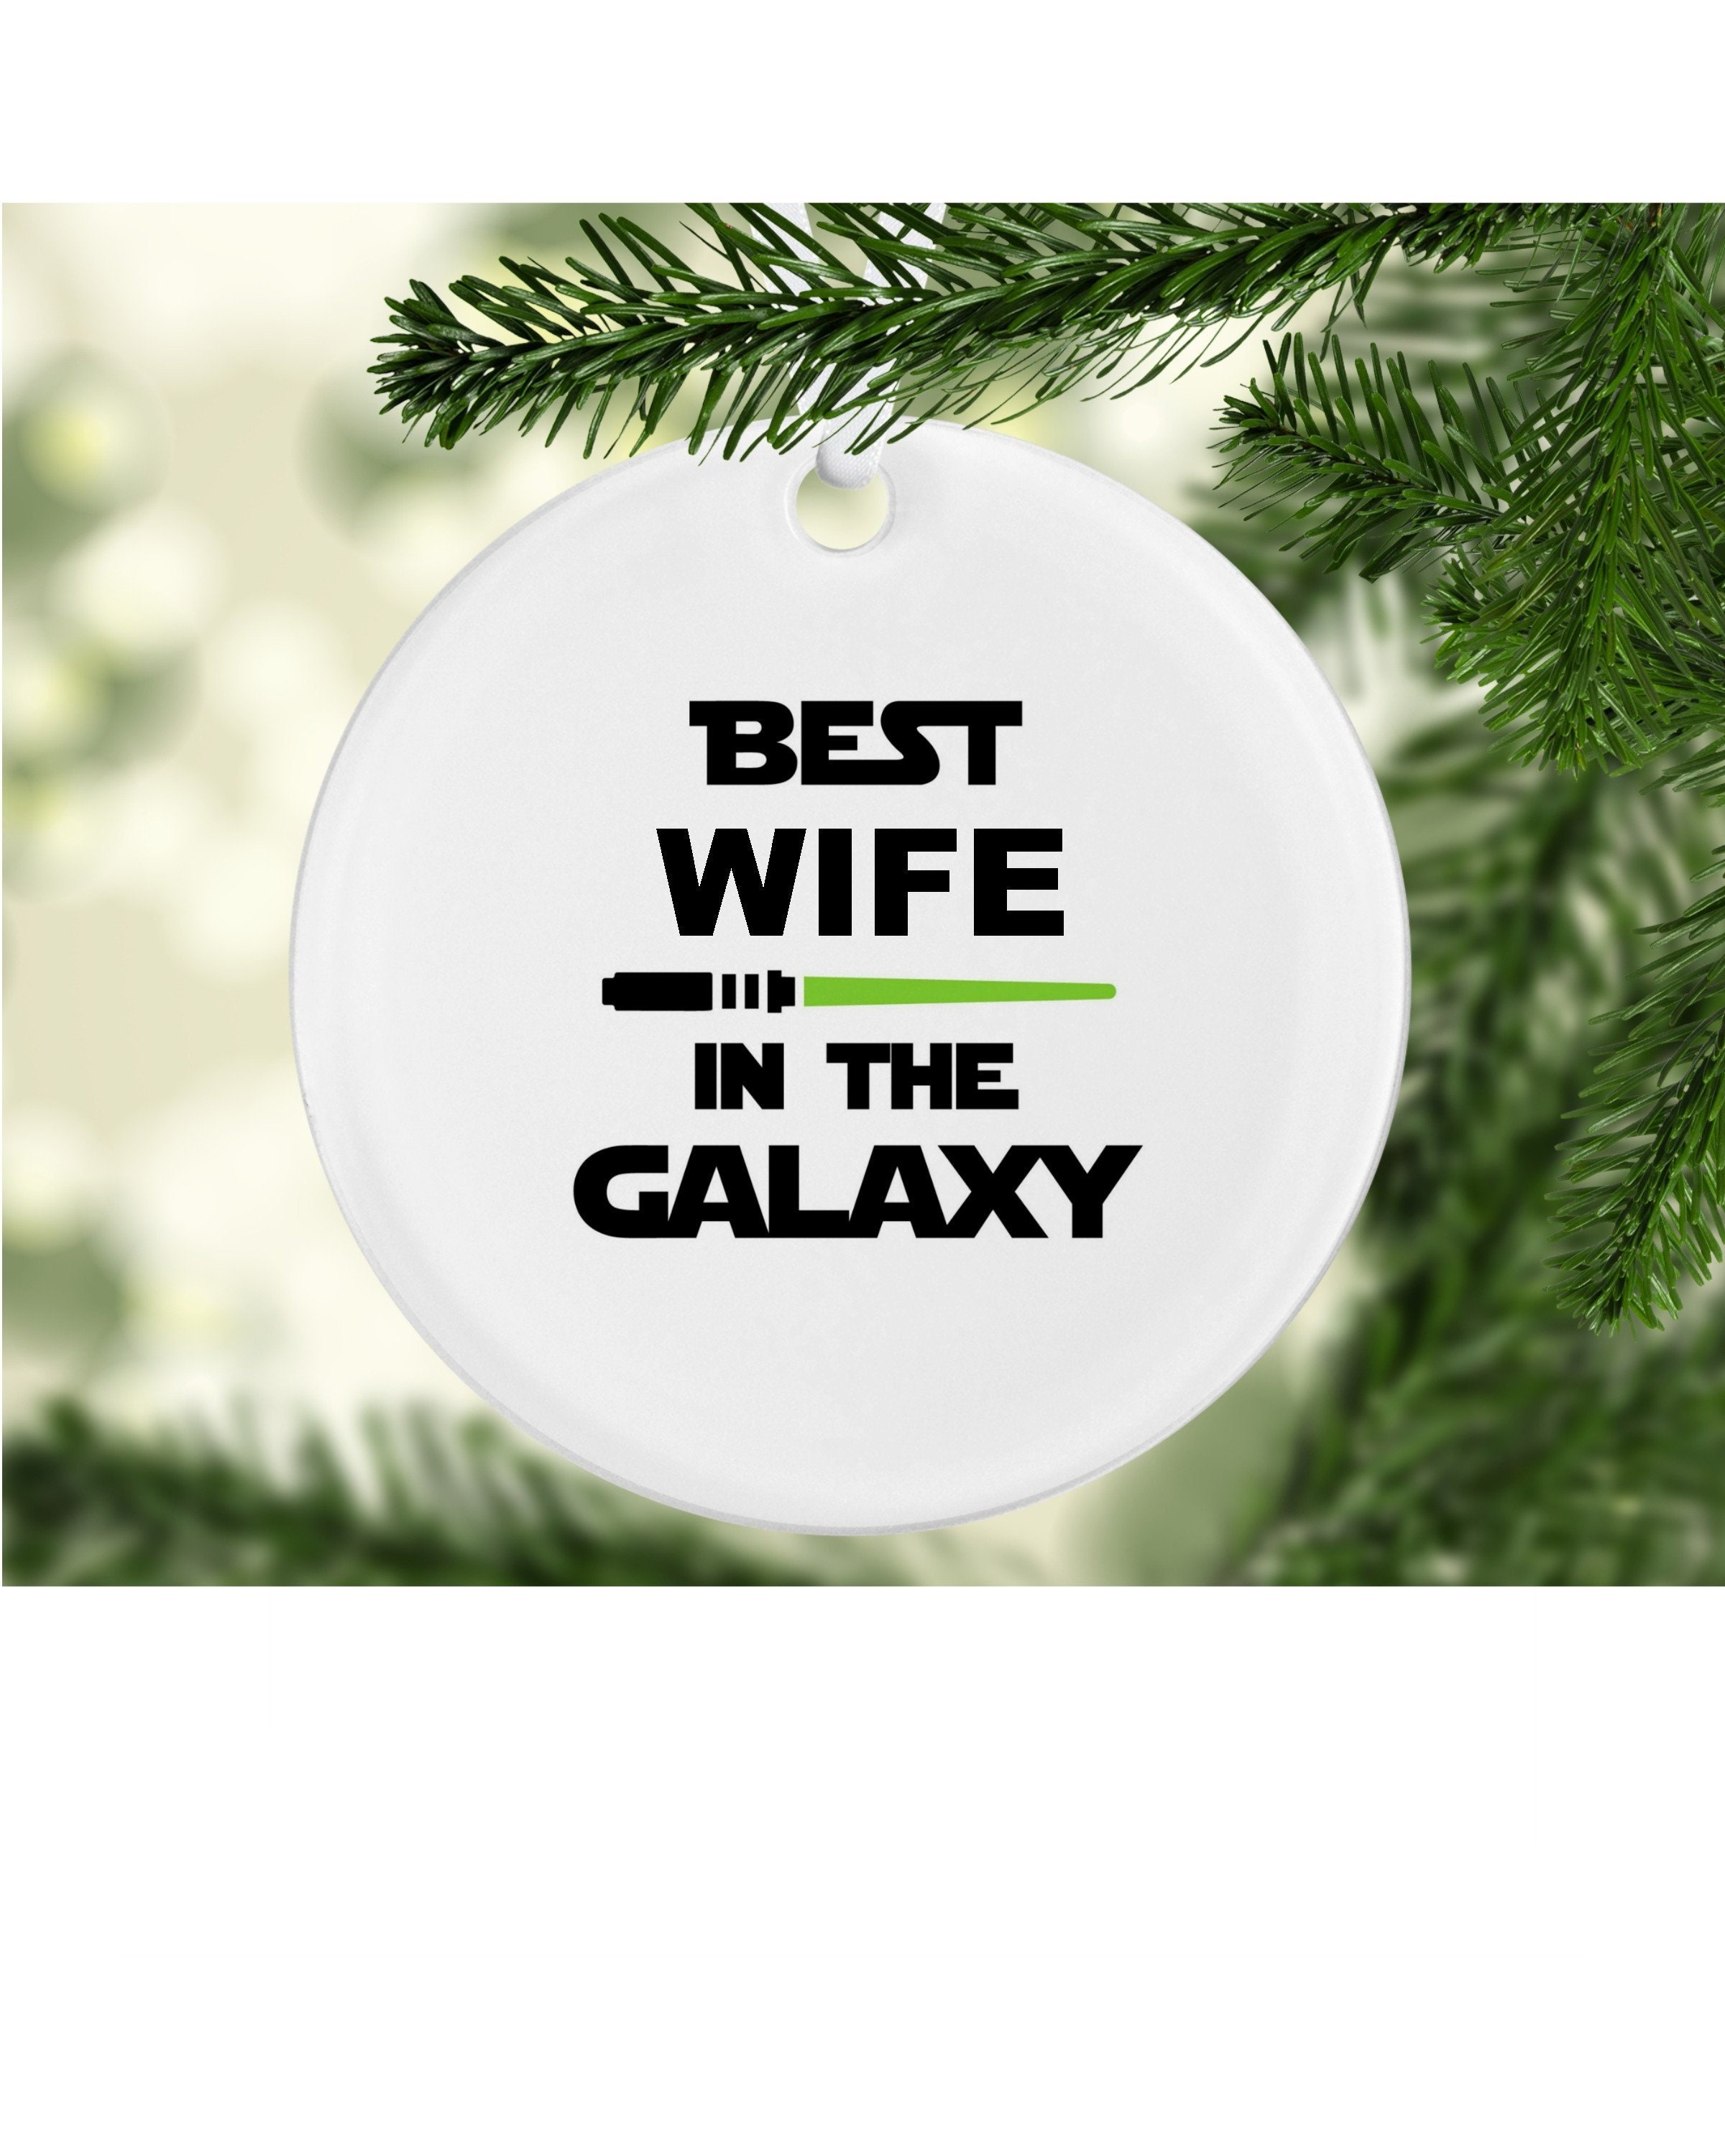 Best Wife in the Galaxy Ornament Best wife in the galaxy | Etsy